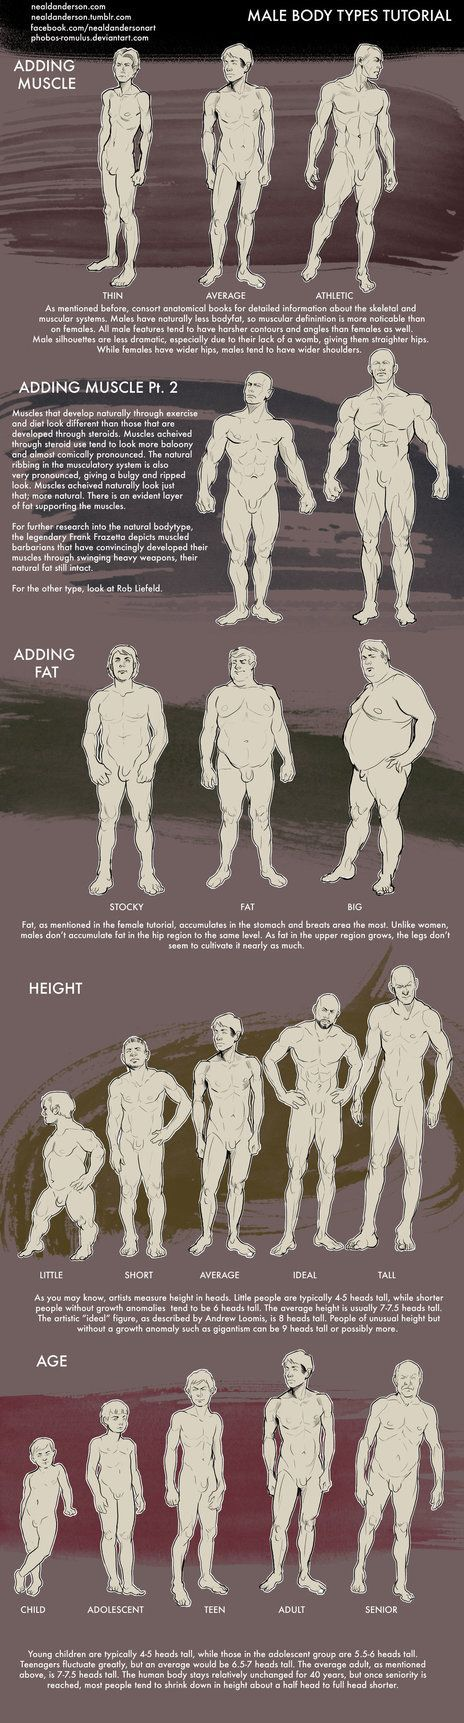 Male Body Types Tutorial by Phobos-Romulus (scheduled via http://www.tailwindapp.com?utm_source=pinterest&utm_medium=twpin&utm_content=post1339903&utm_campaign=scheduler_attribution)